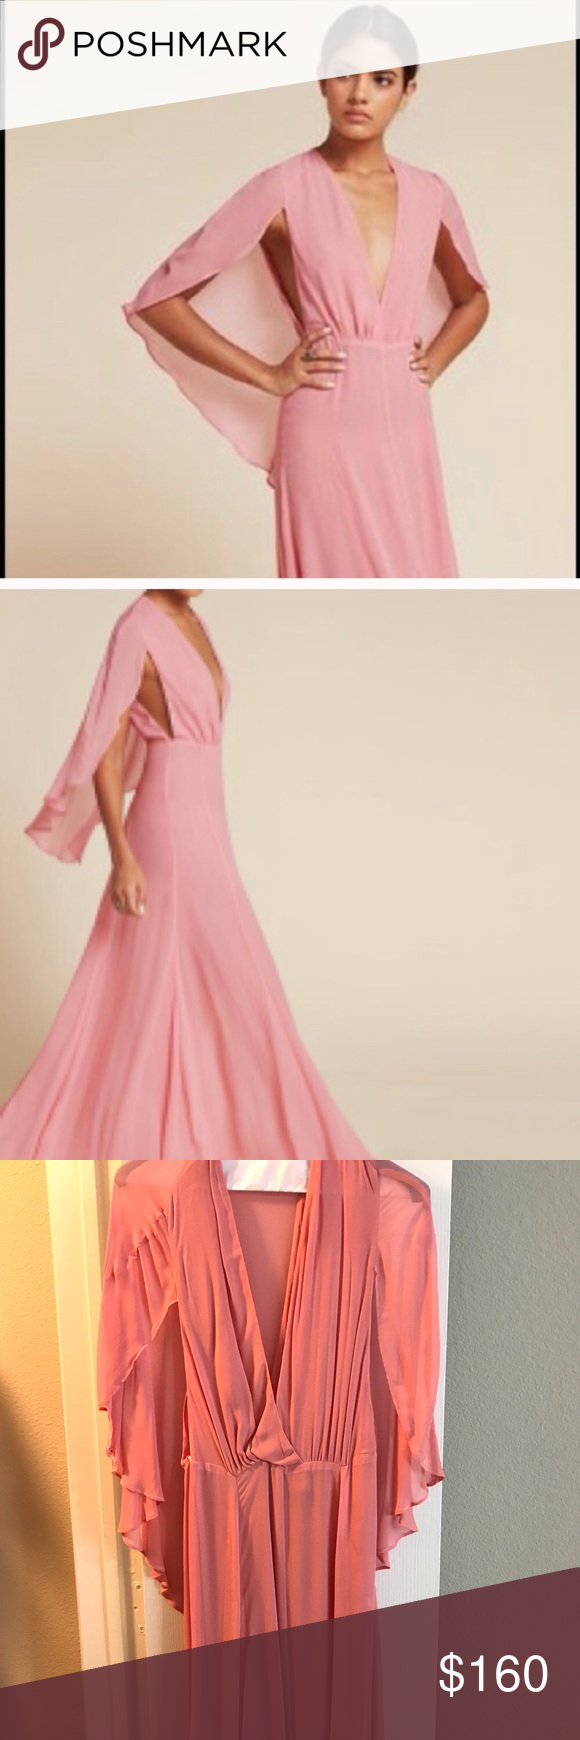 Reformation liliana dress reformation floor length dresses and